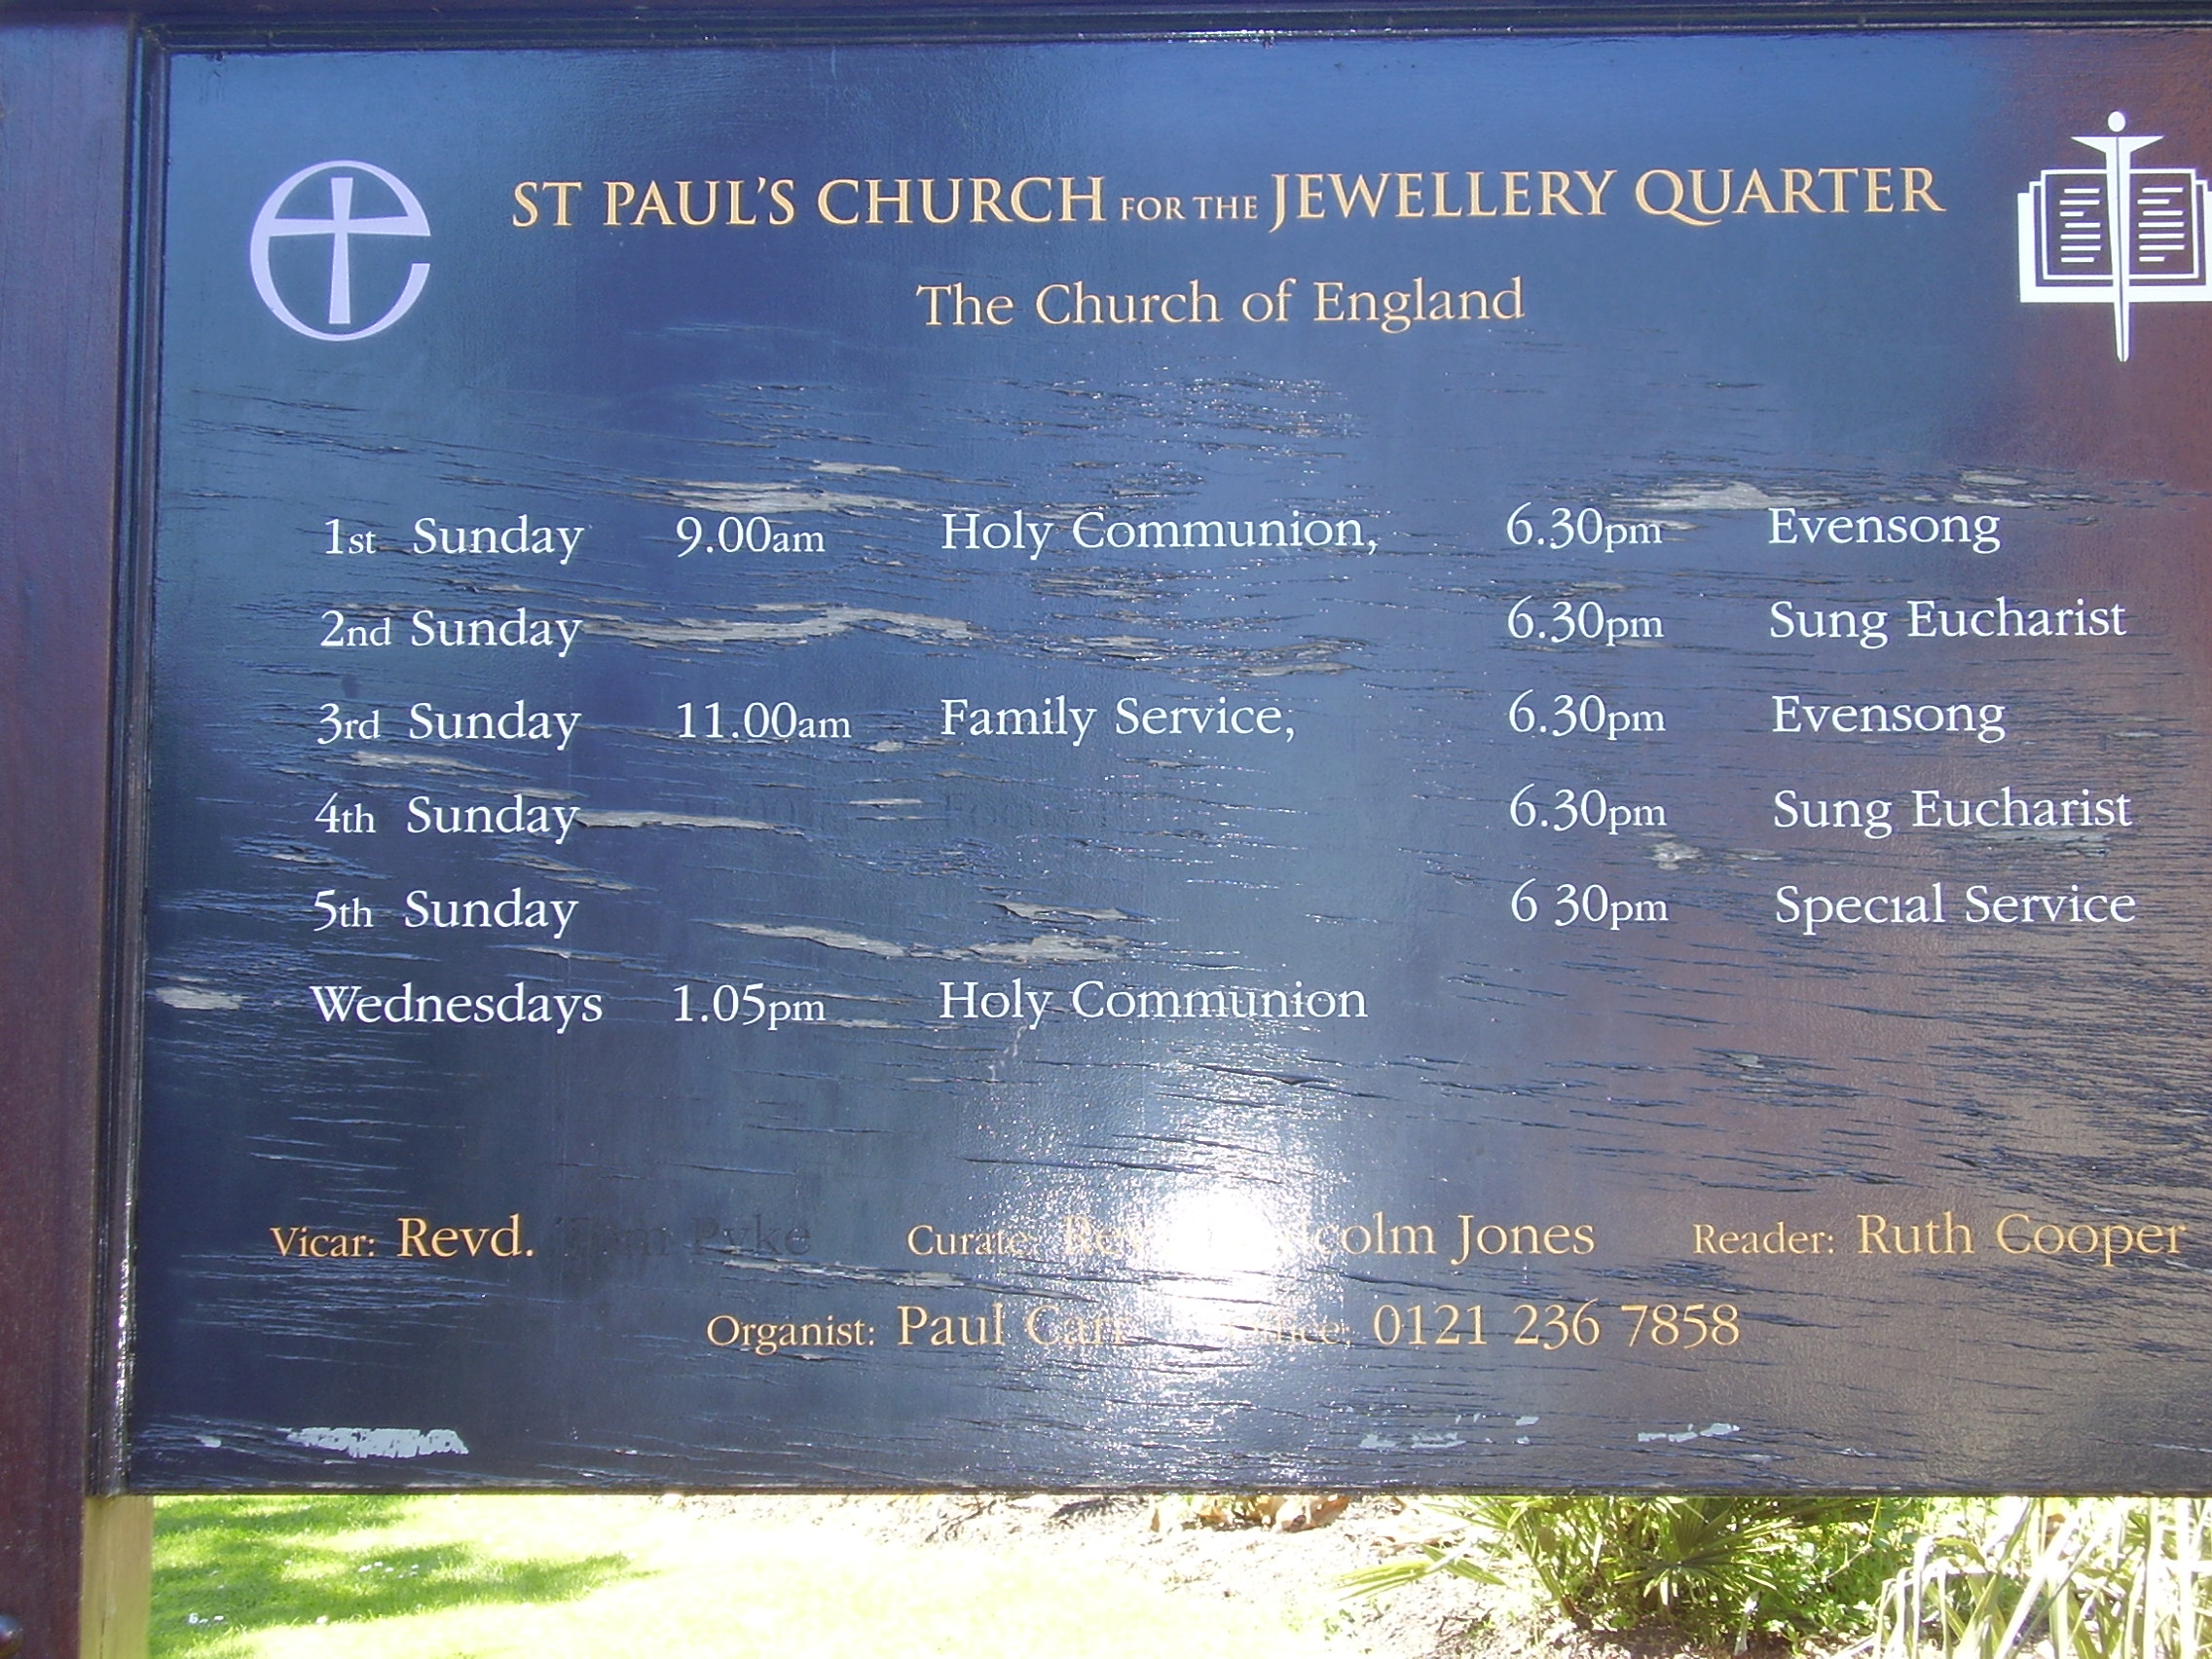 St Paul's Church Notice Board Grade 1 listed Built 1779  Jewellery Quarter Birmingham Photo 2008 Joseph Burke